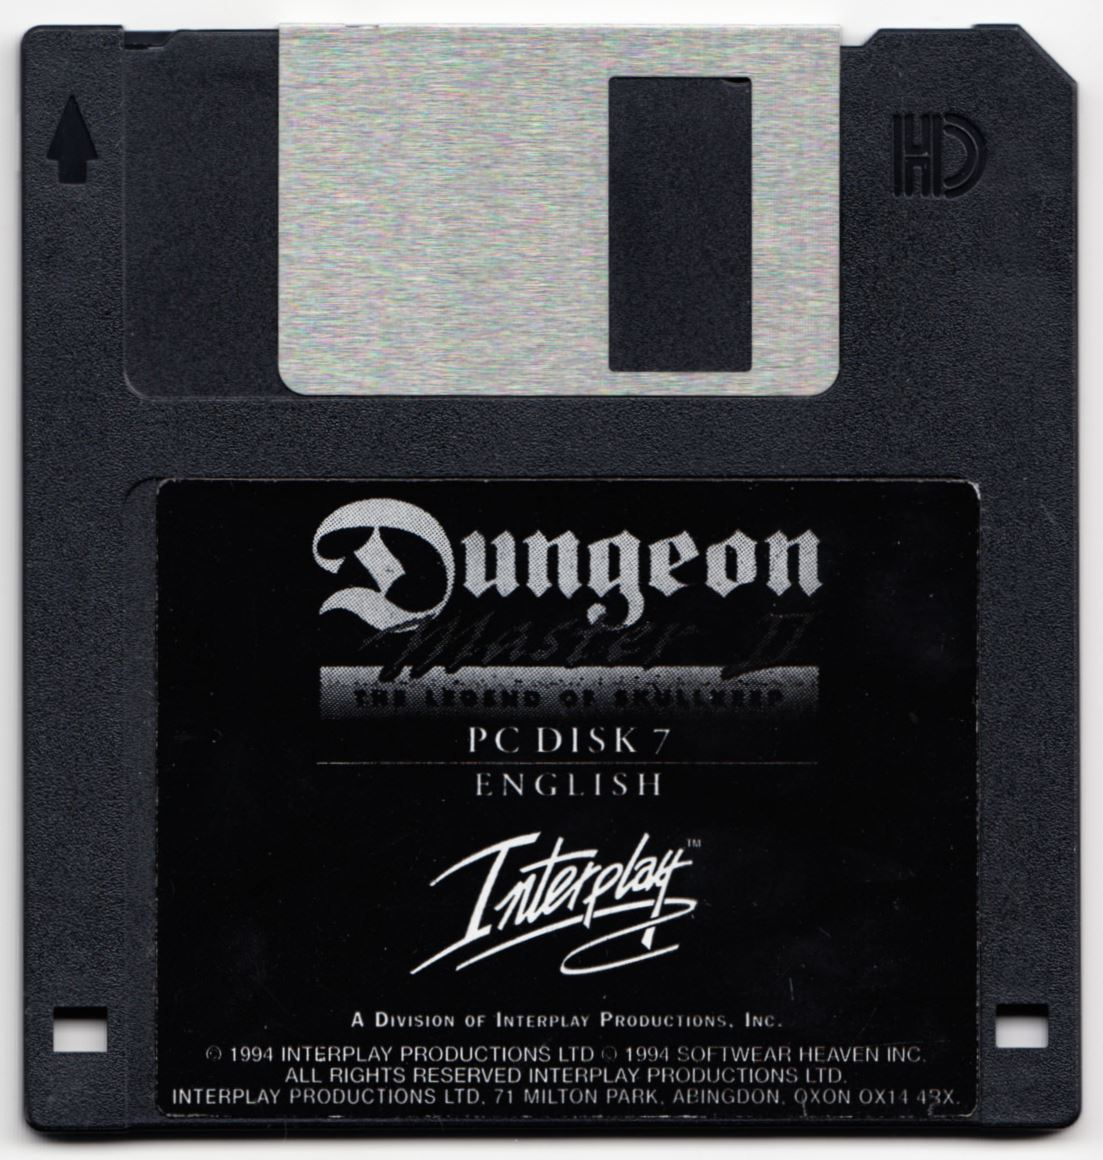 Game - Dungeon Master II - UK - PC - Floppy Version - Disk 7 - Front - Scan